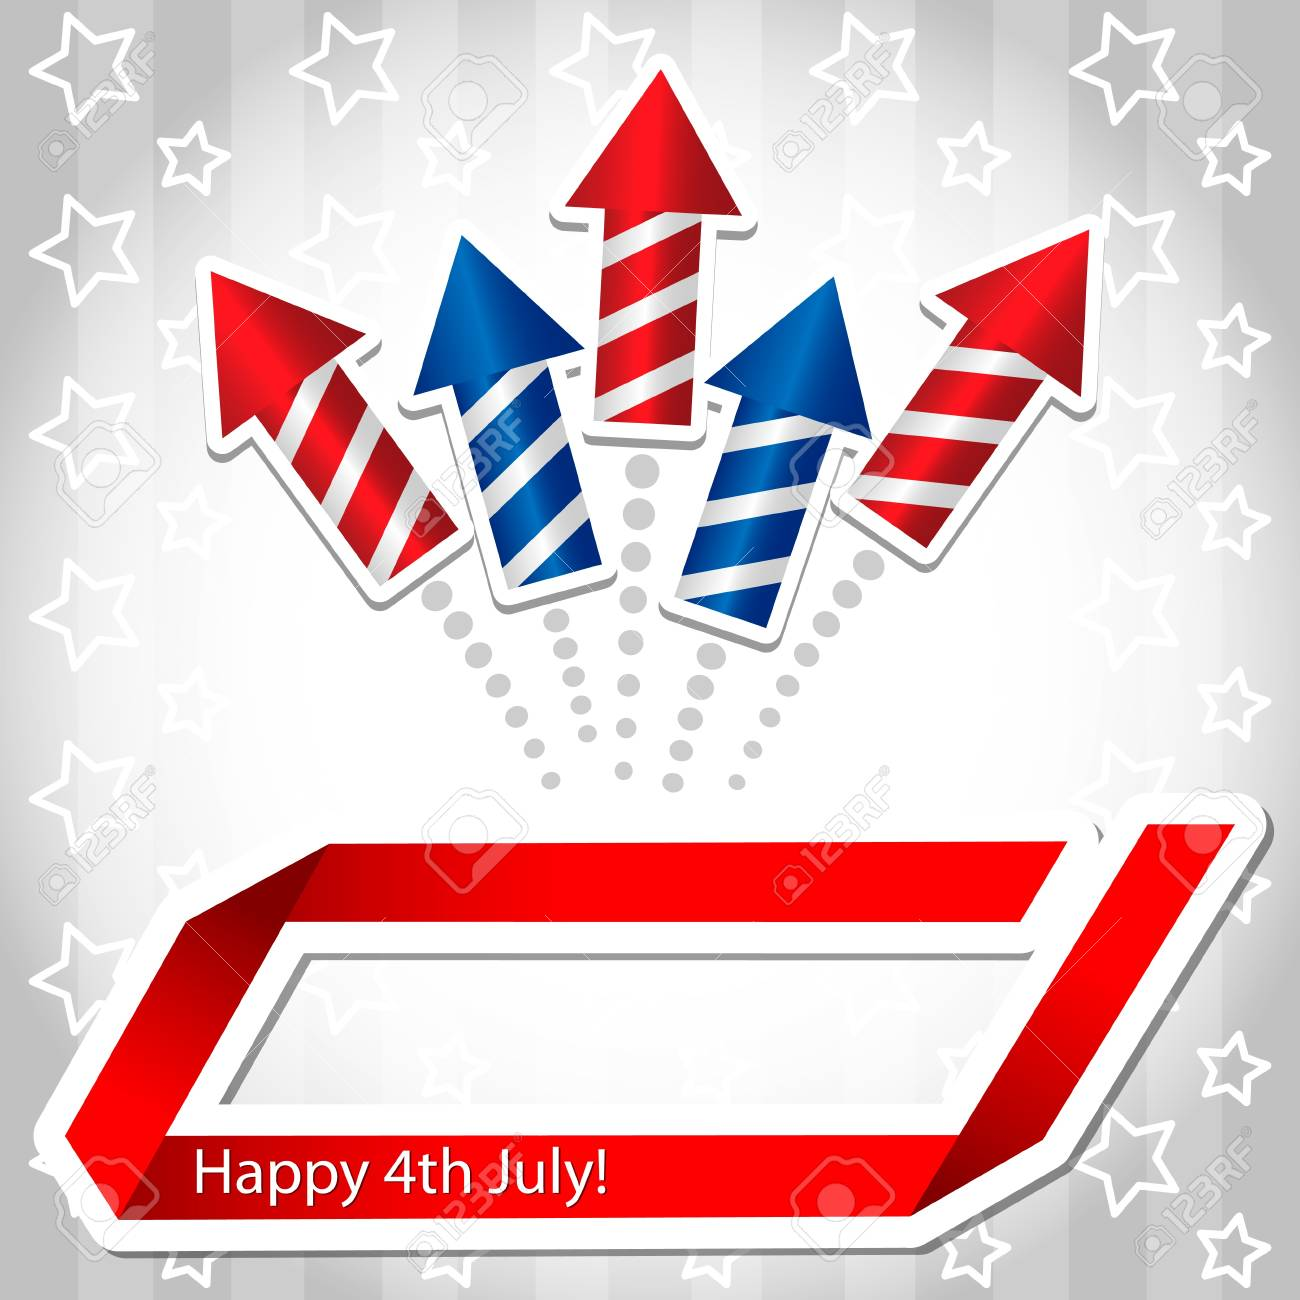 4th july Rocket Background Stock Vector - 13913905